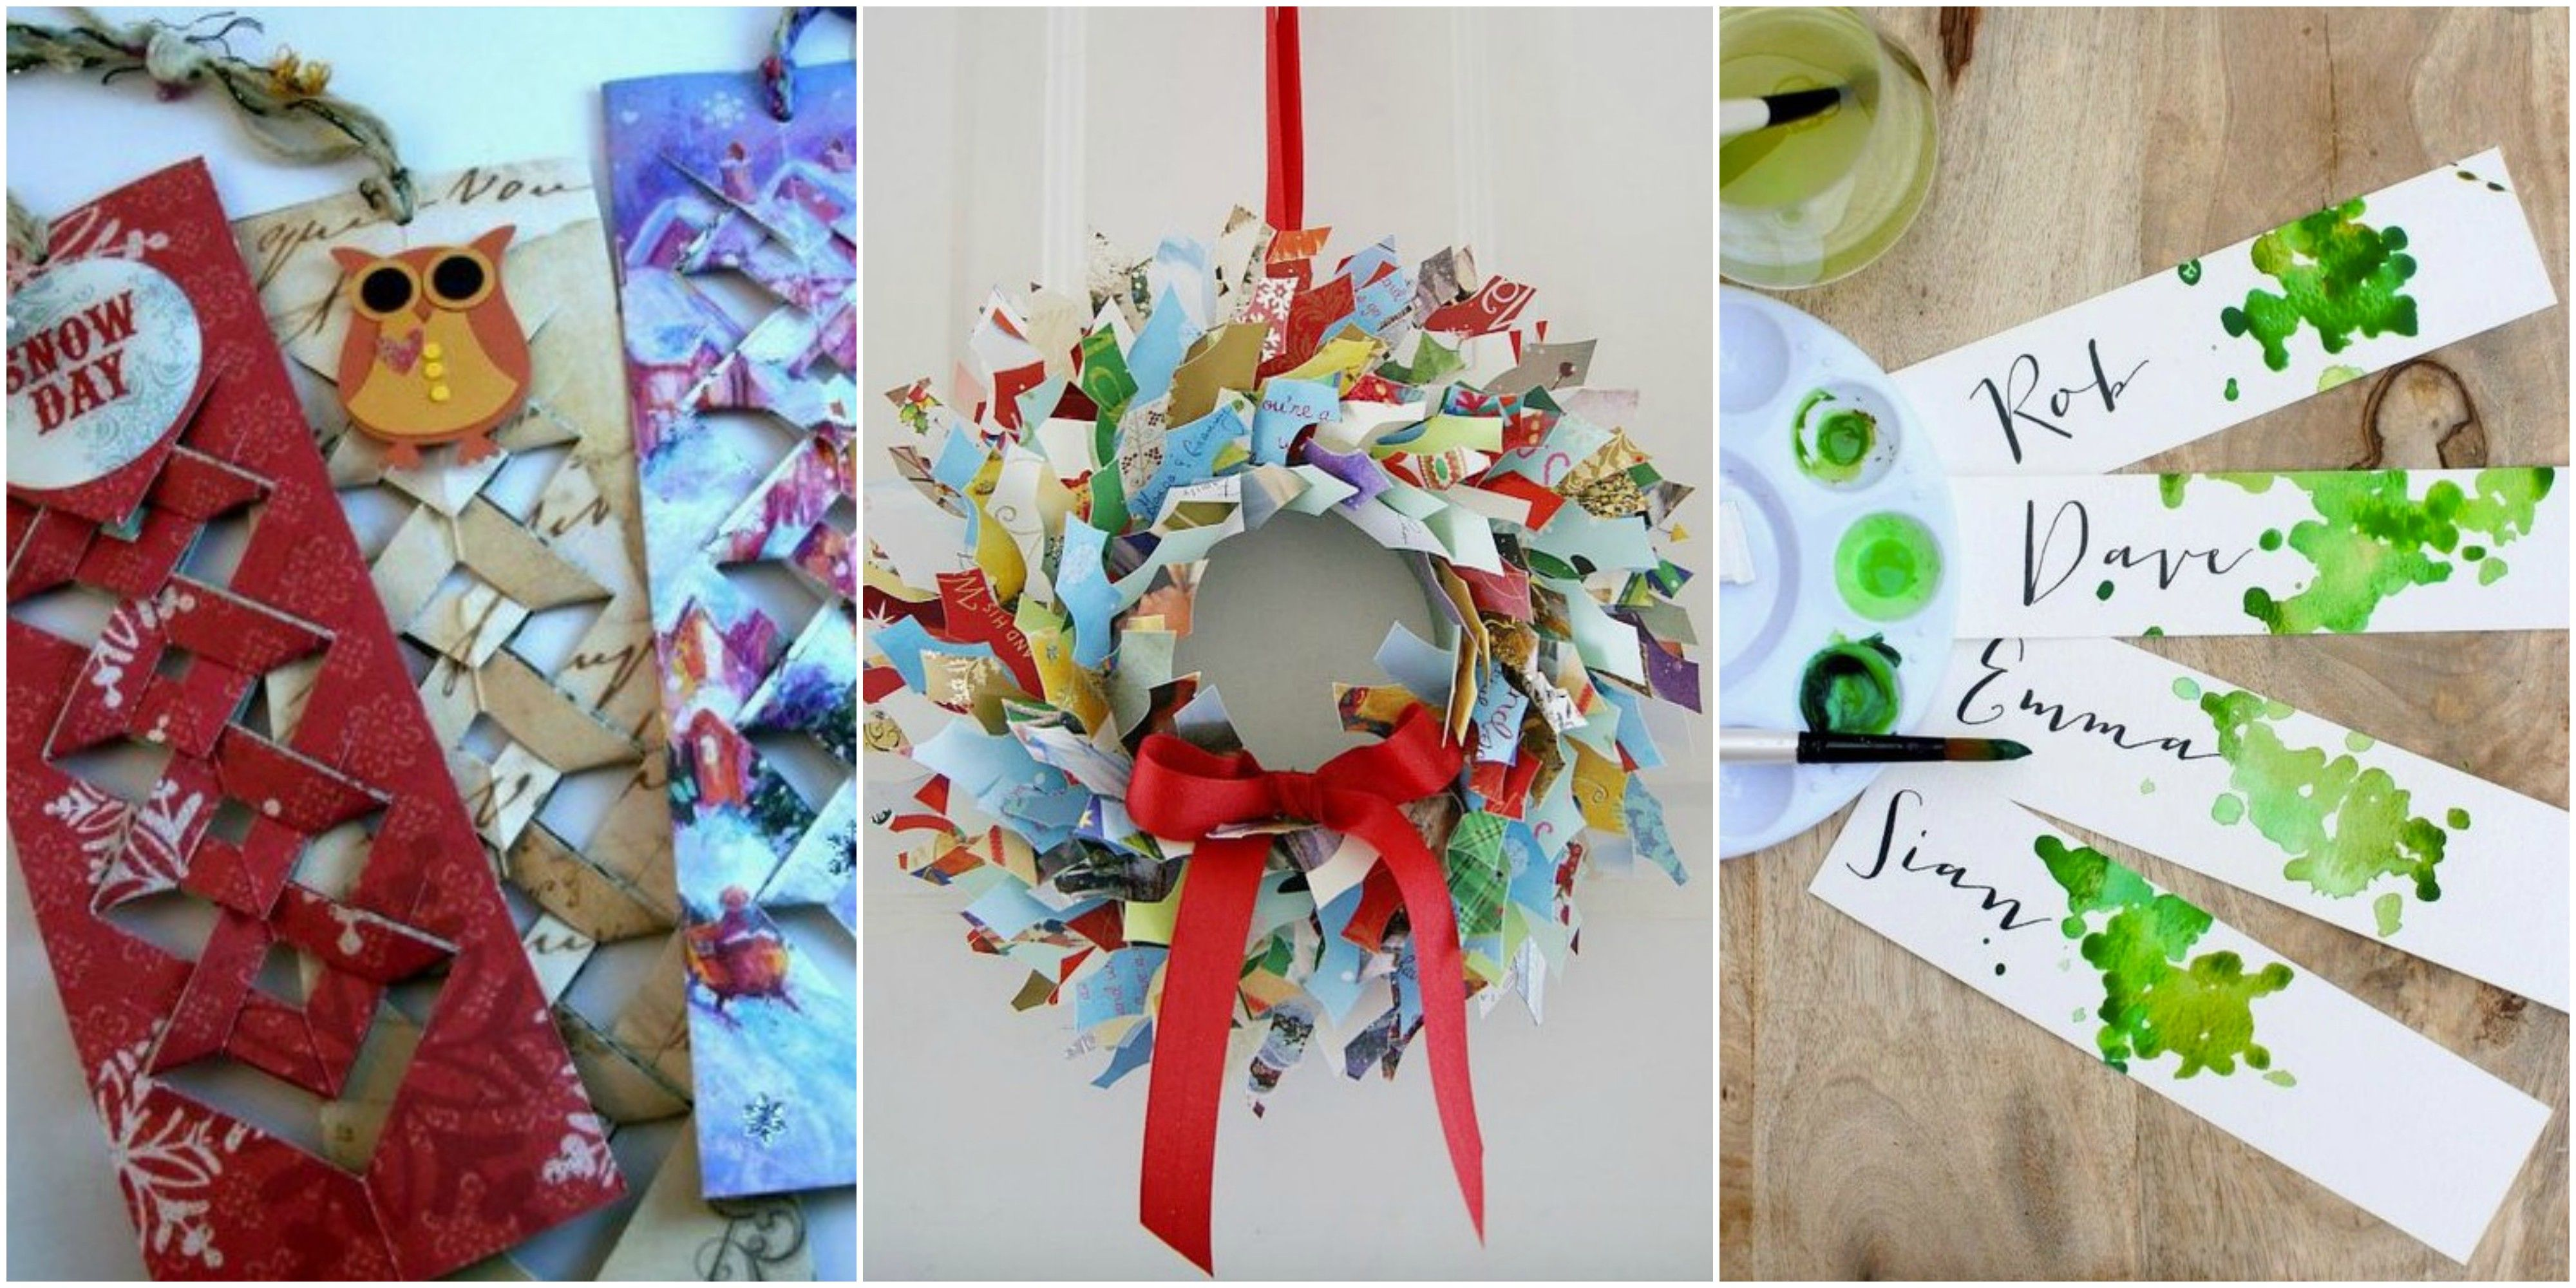 8 creative ways to upcycle old Christmas cards - How to recycle ...